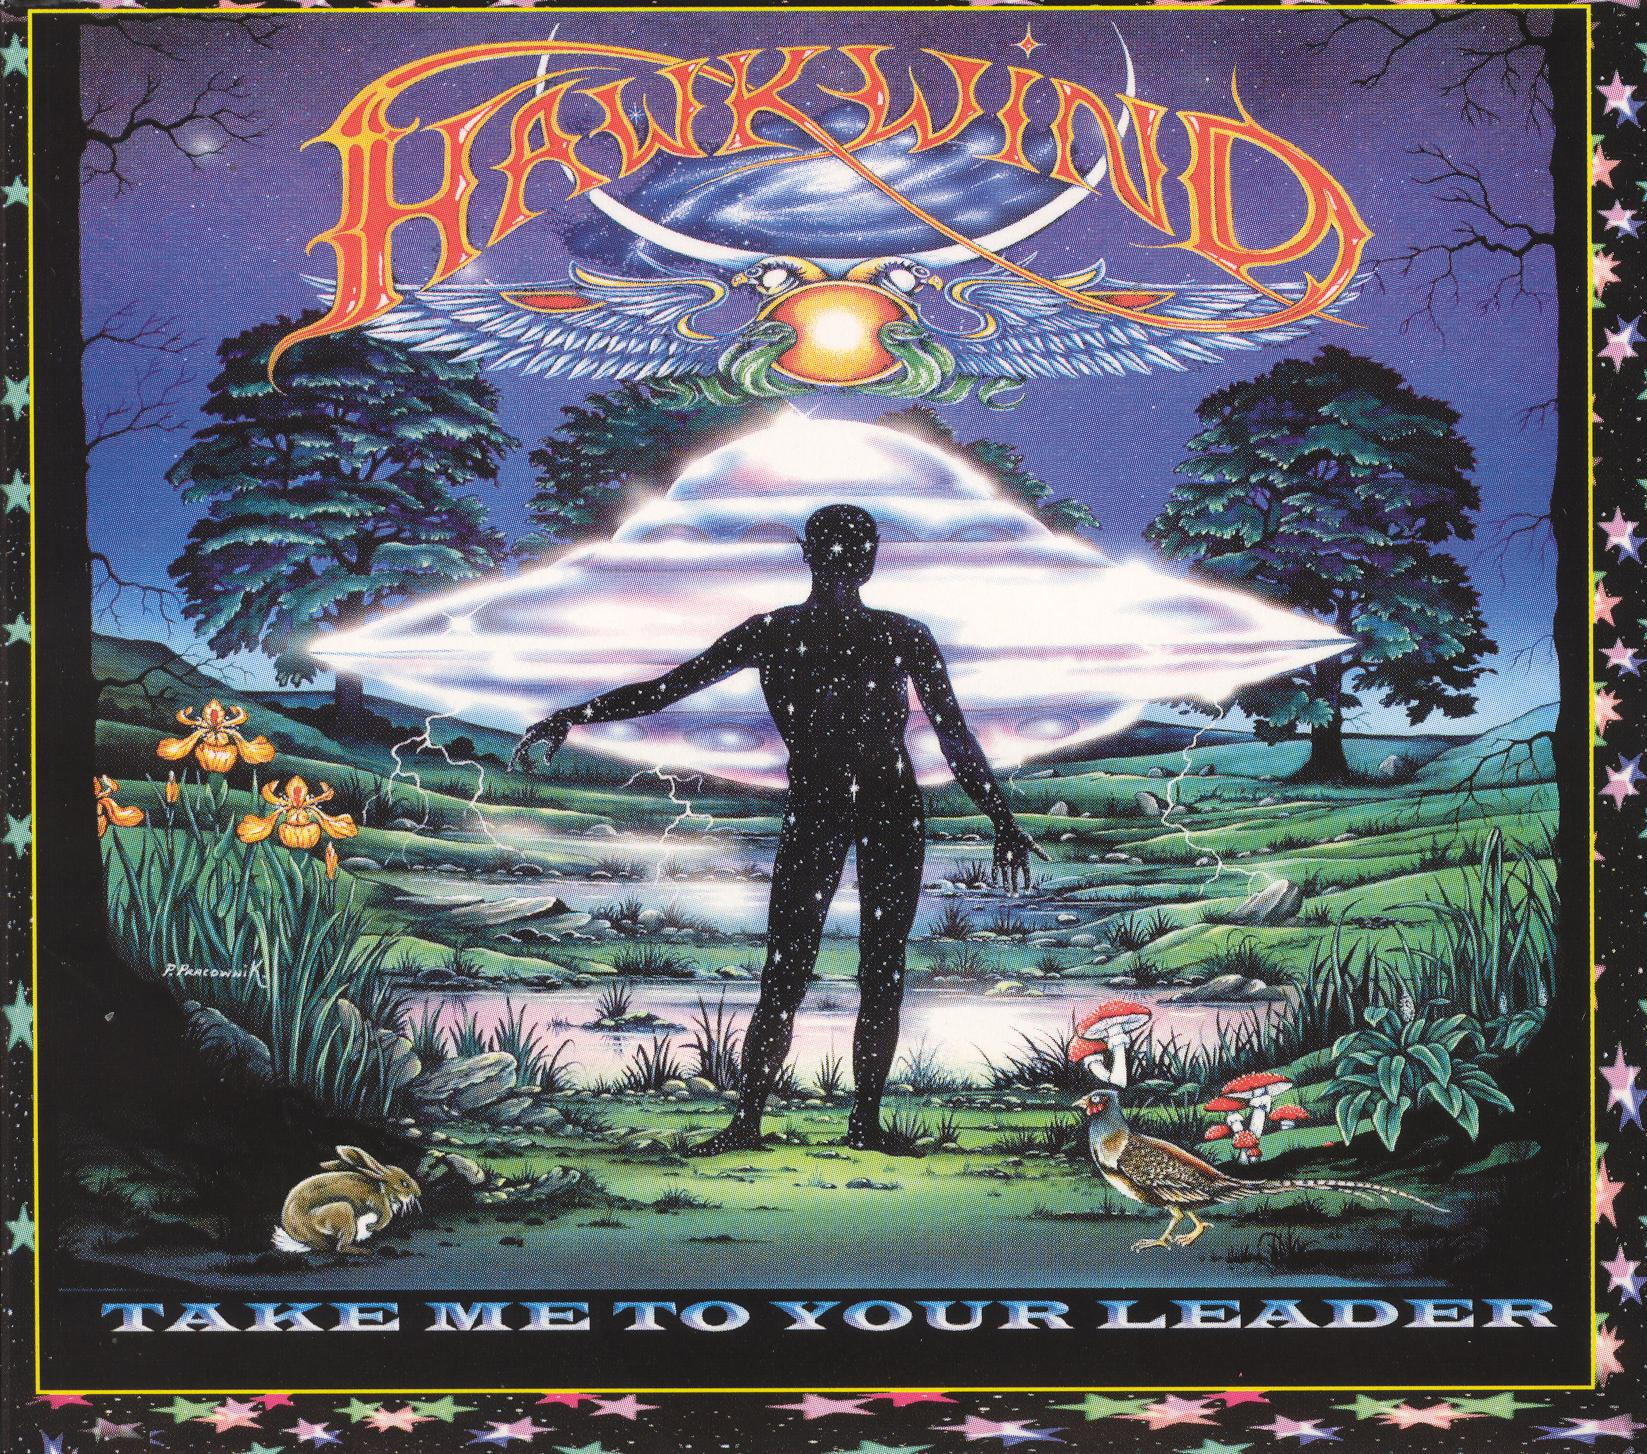 Hawkwind: Take Me to Your Leader